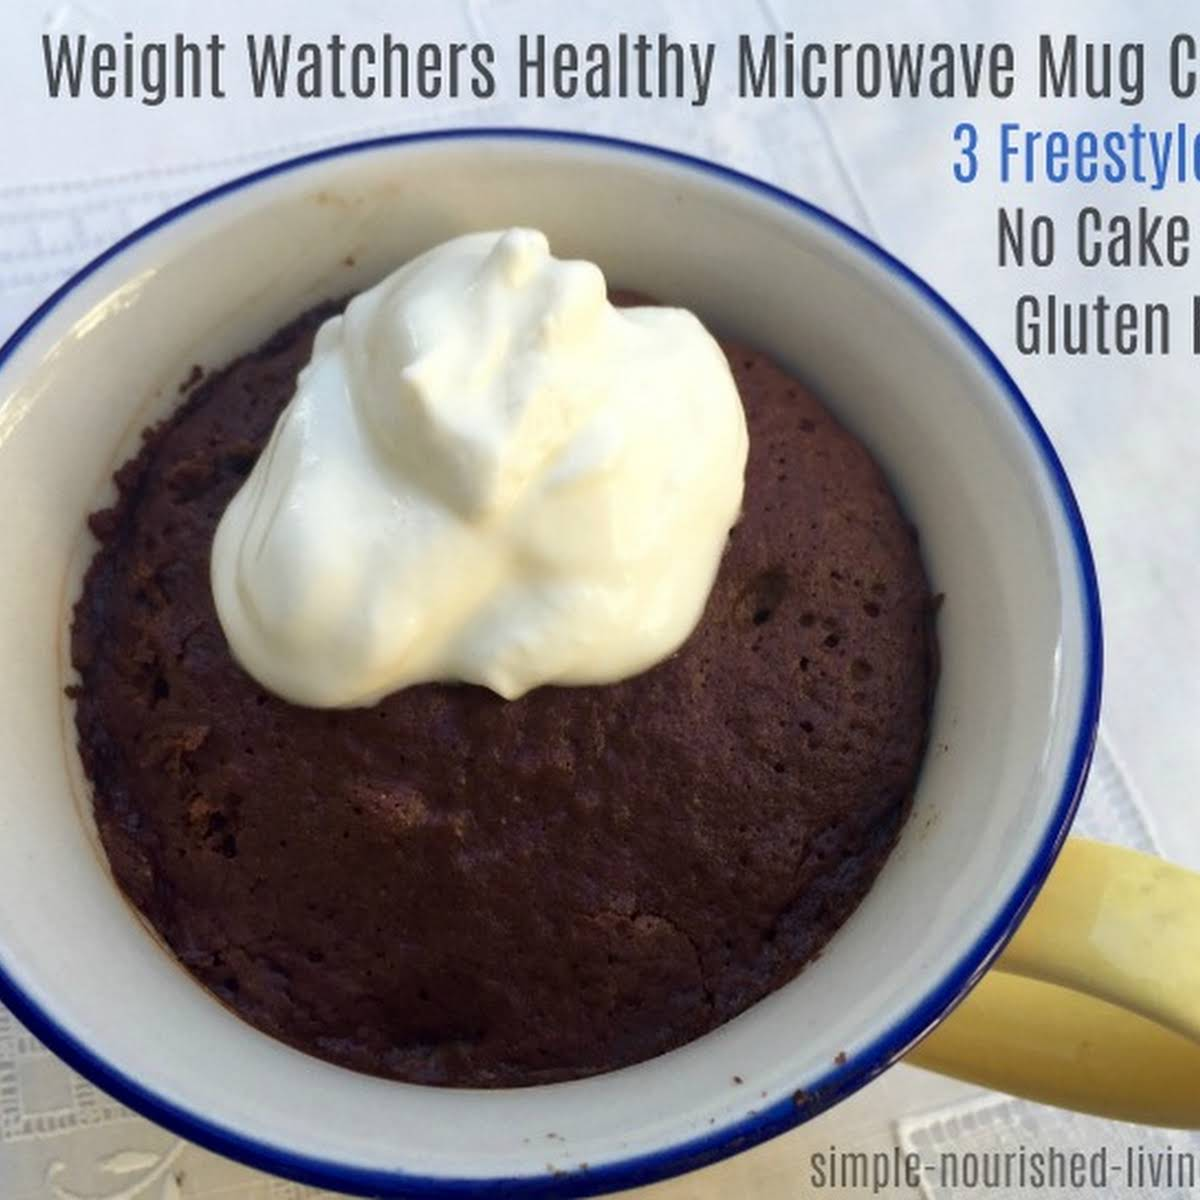 Marvelous Weight Watchers Cake Recipes Yummly Funny Birthday Cards Online Overcheapnameinfo